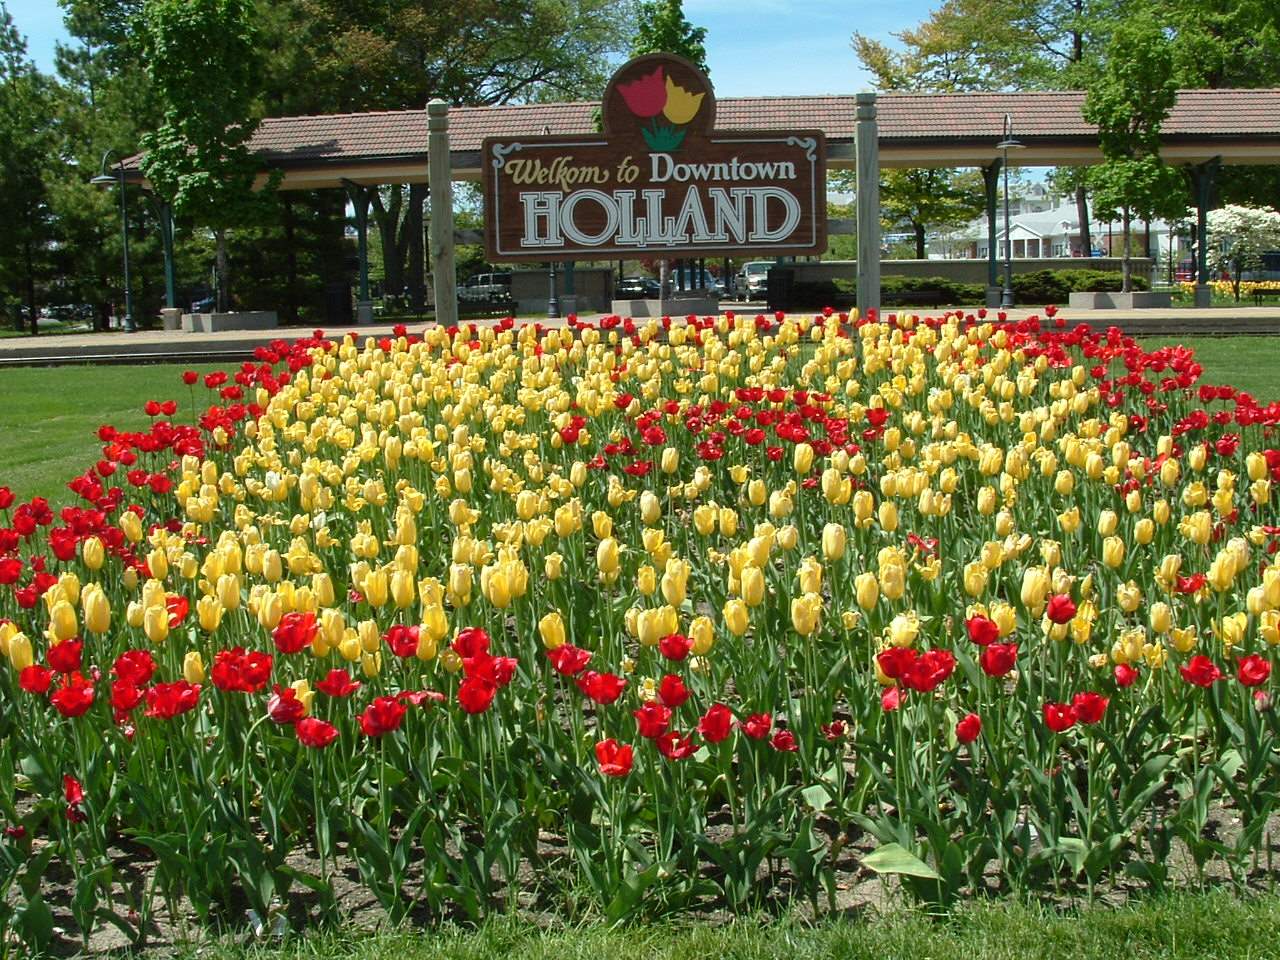 tulip festival bloom map with File Holland Mi Tulips 01 on Tulips Galore And More At The Skagit Valley Tulip Festival In Skagit Valley Washington as well Stock Photo Orange Tulip Flower Festival Chiangrai Thailand Image49446669 also 8693271456 furthermore Saratoga State Park Map besides Skagit Valley Tulip Festival Guide With Kids.